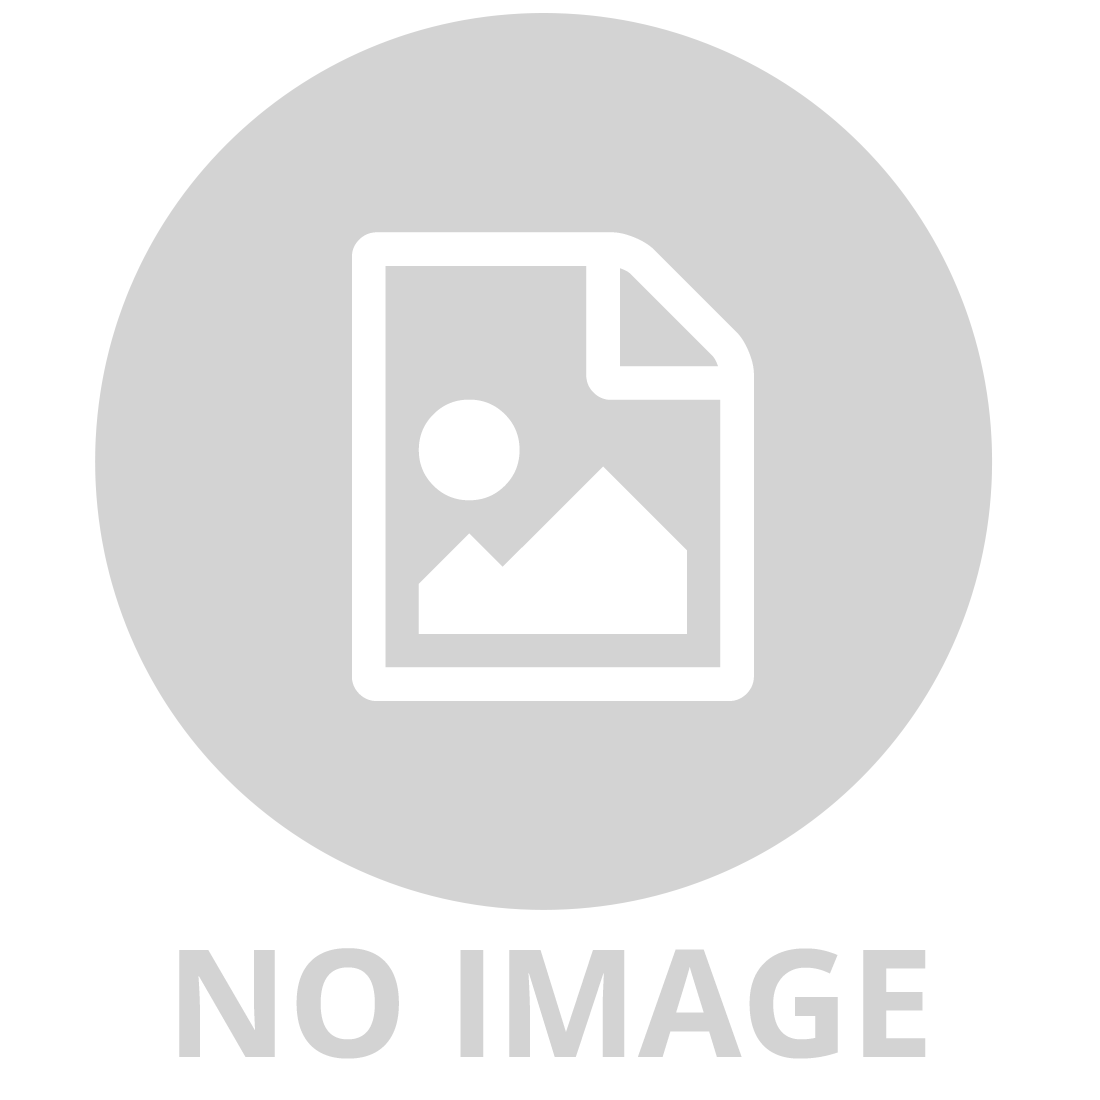 KINDI KIDS TODDLER DOLL MARSHA MELLO